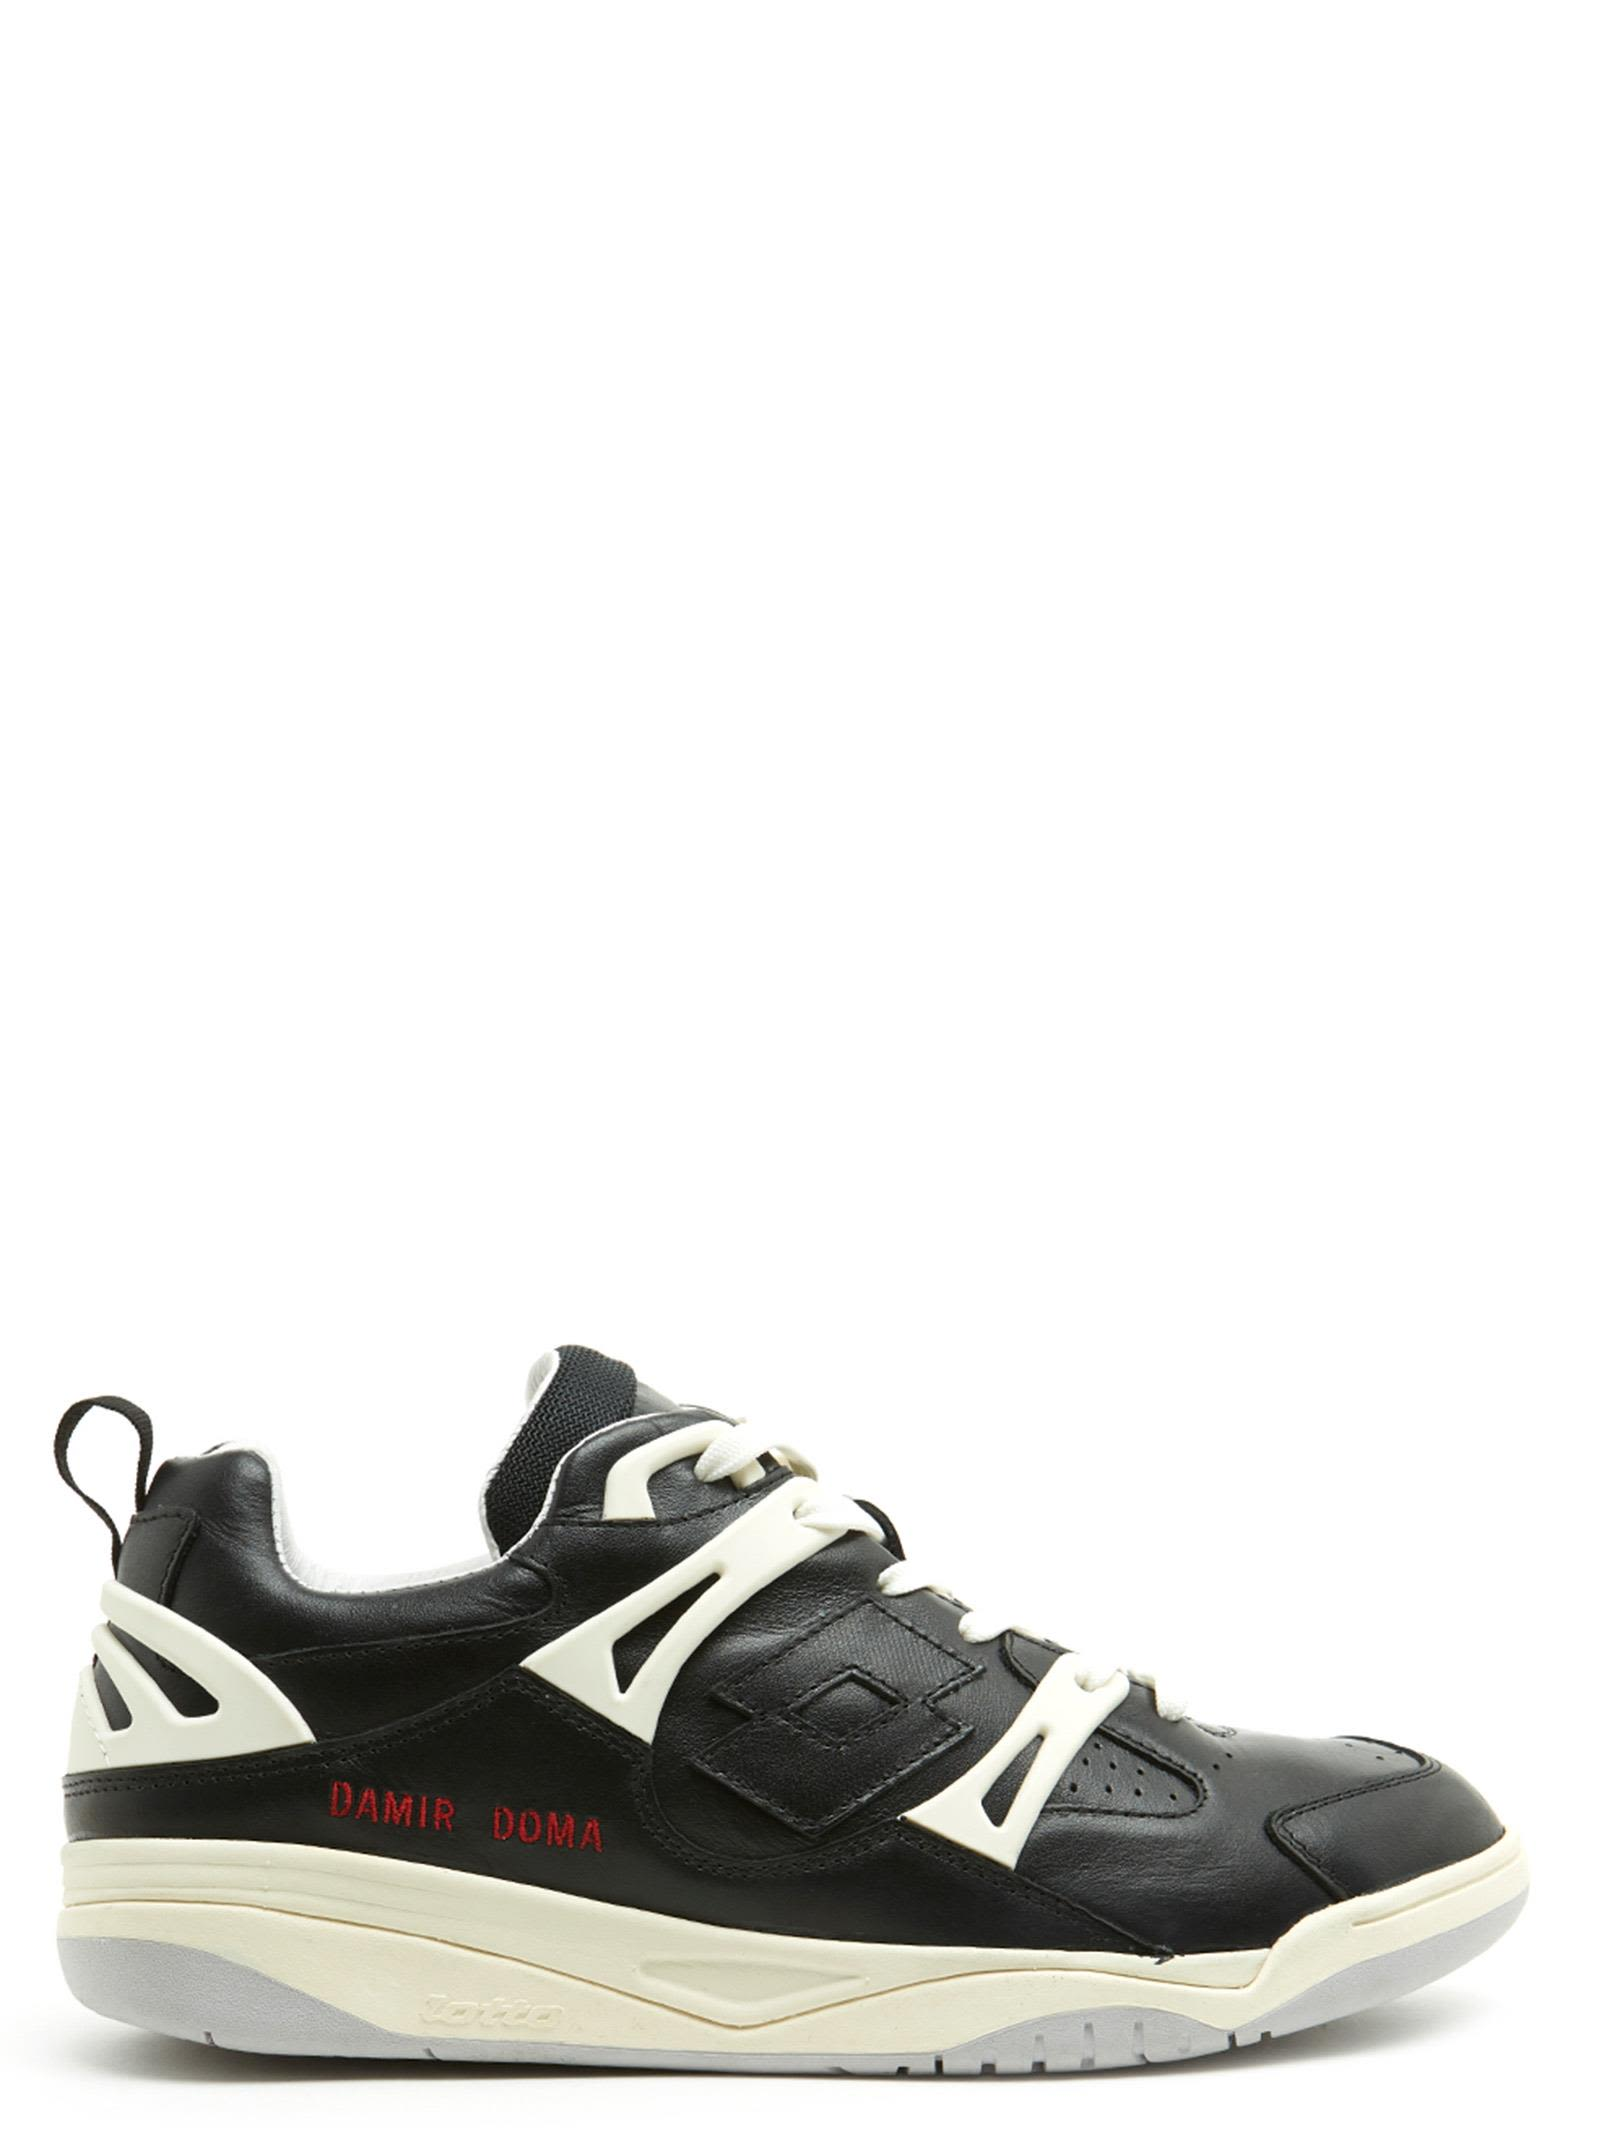 DAMIR DOMA - LOTTO Damir Doma / Lotto Flor L Shoes in Black